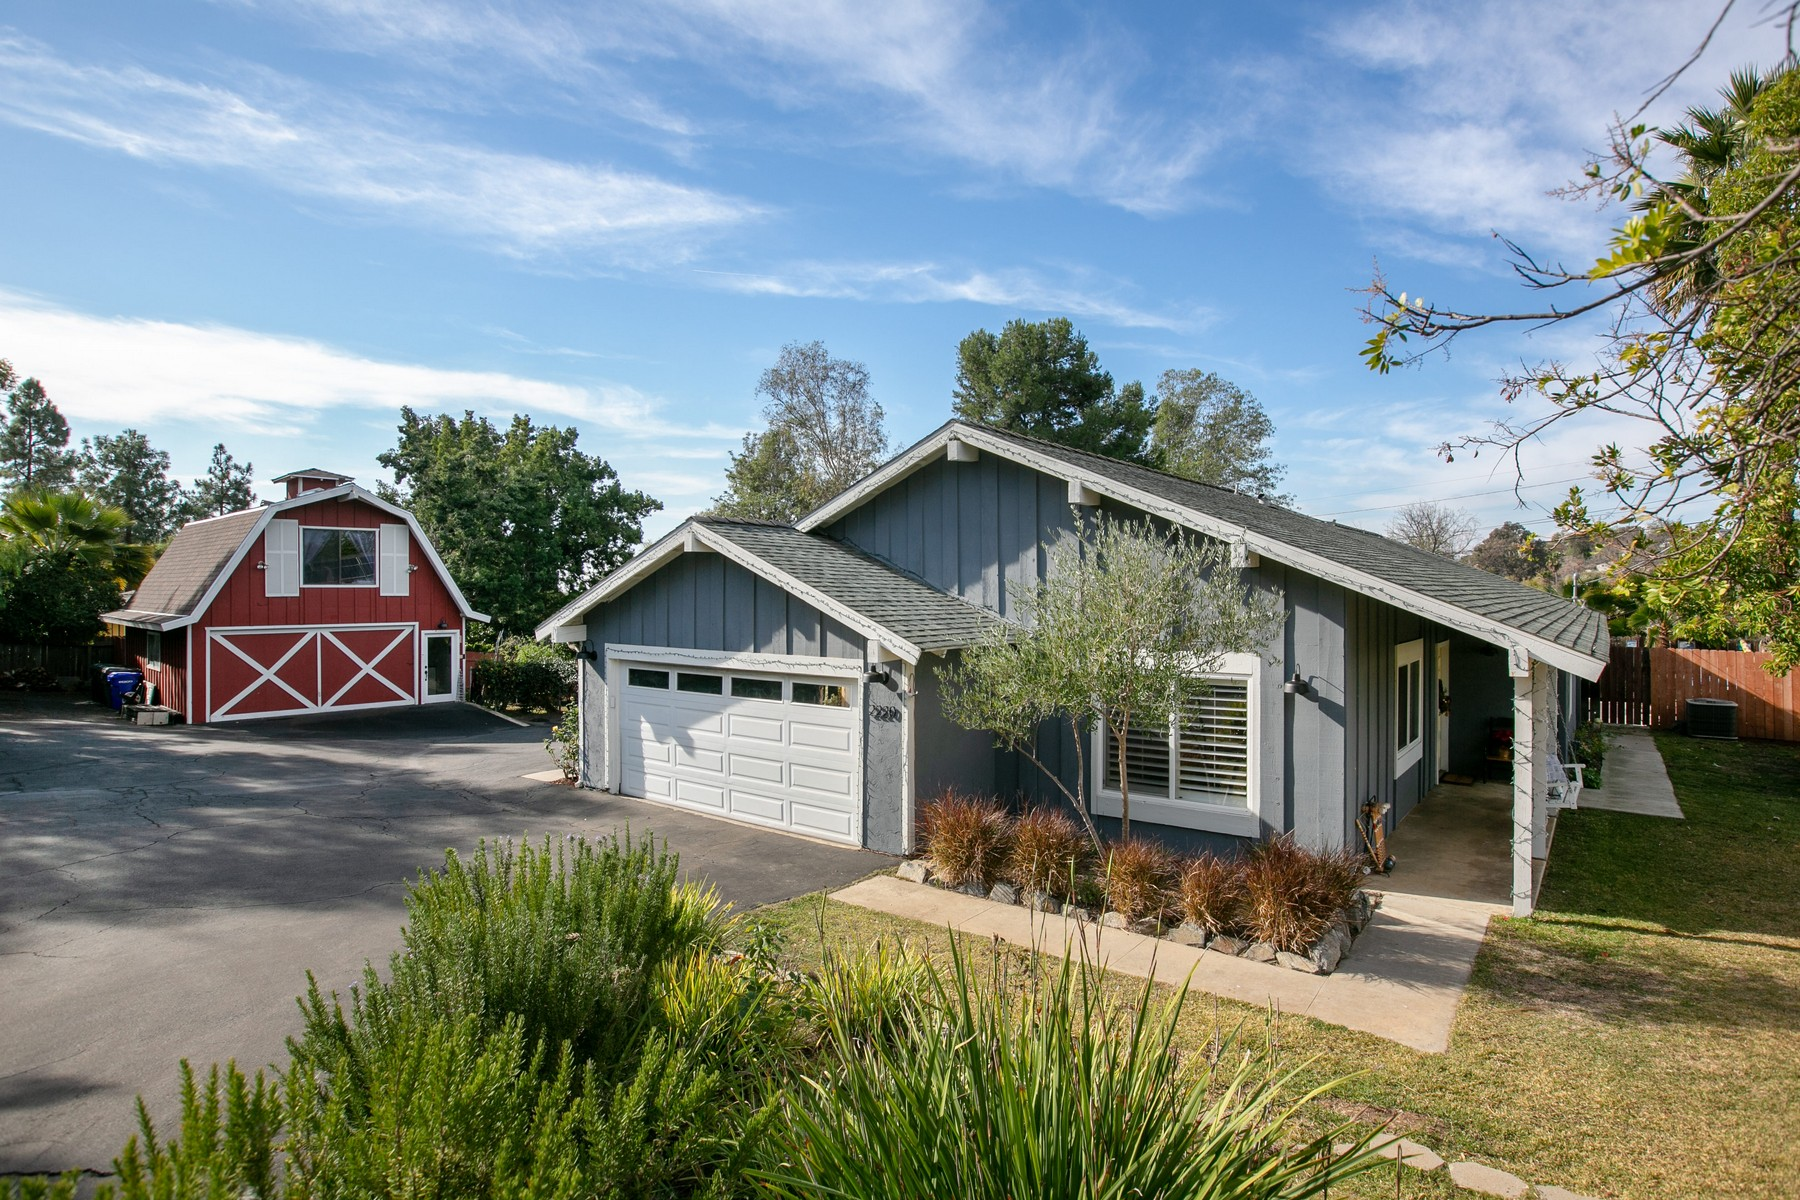 Single Family Home for Active at 2220 Dons Way 2220 Dons Way Vista, California 92084 United States